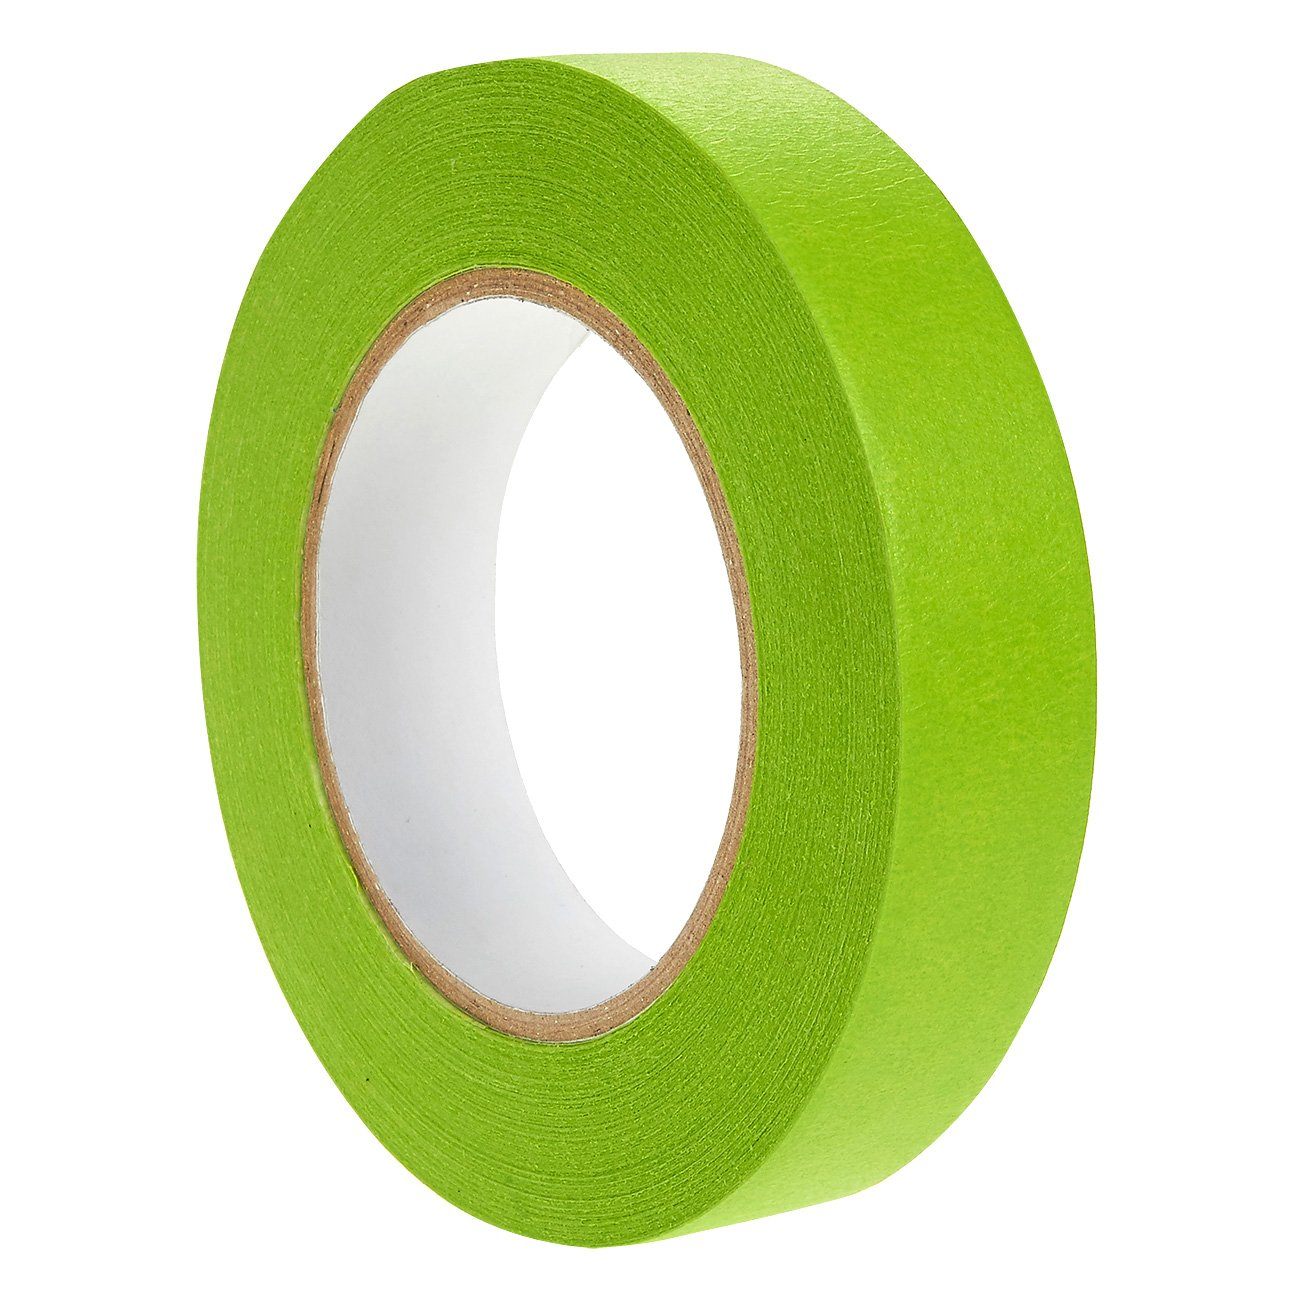 1 Piece Multi-Surface Painter's Masking Tape - Bright Green Adhesive Tape for Marking, Decoration, Repair Work, Crafts - 60 yards